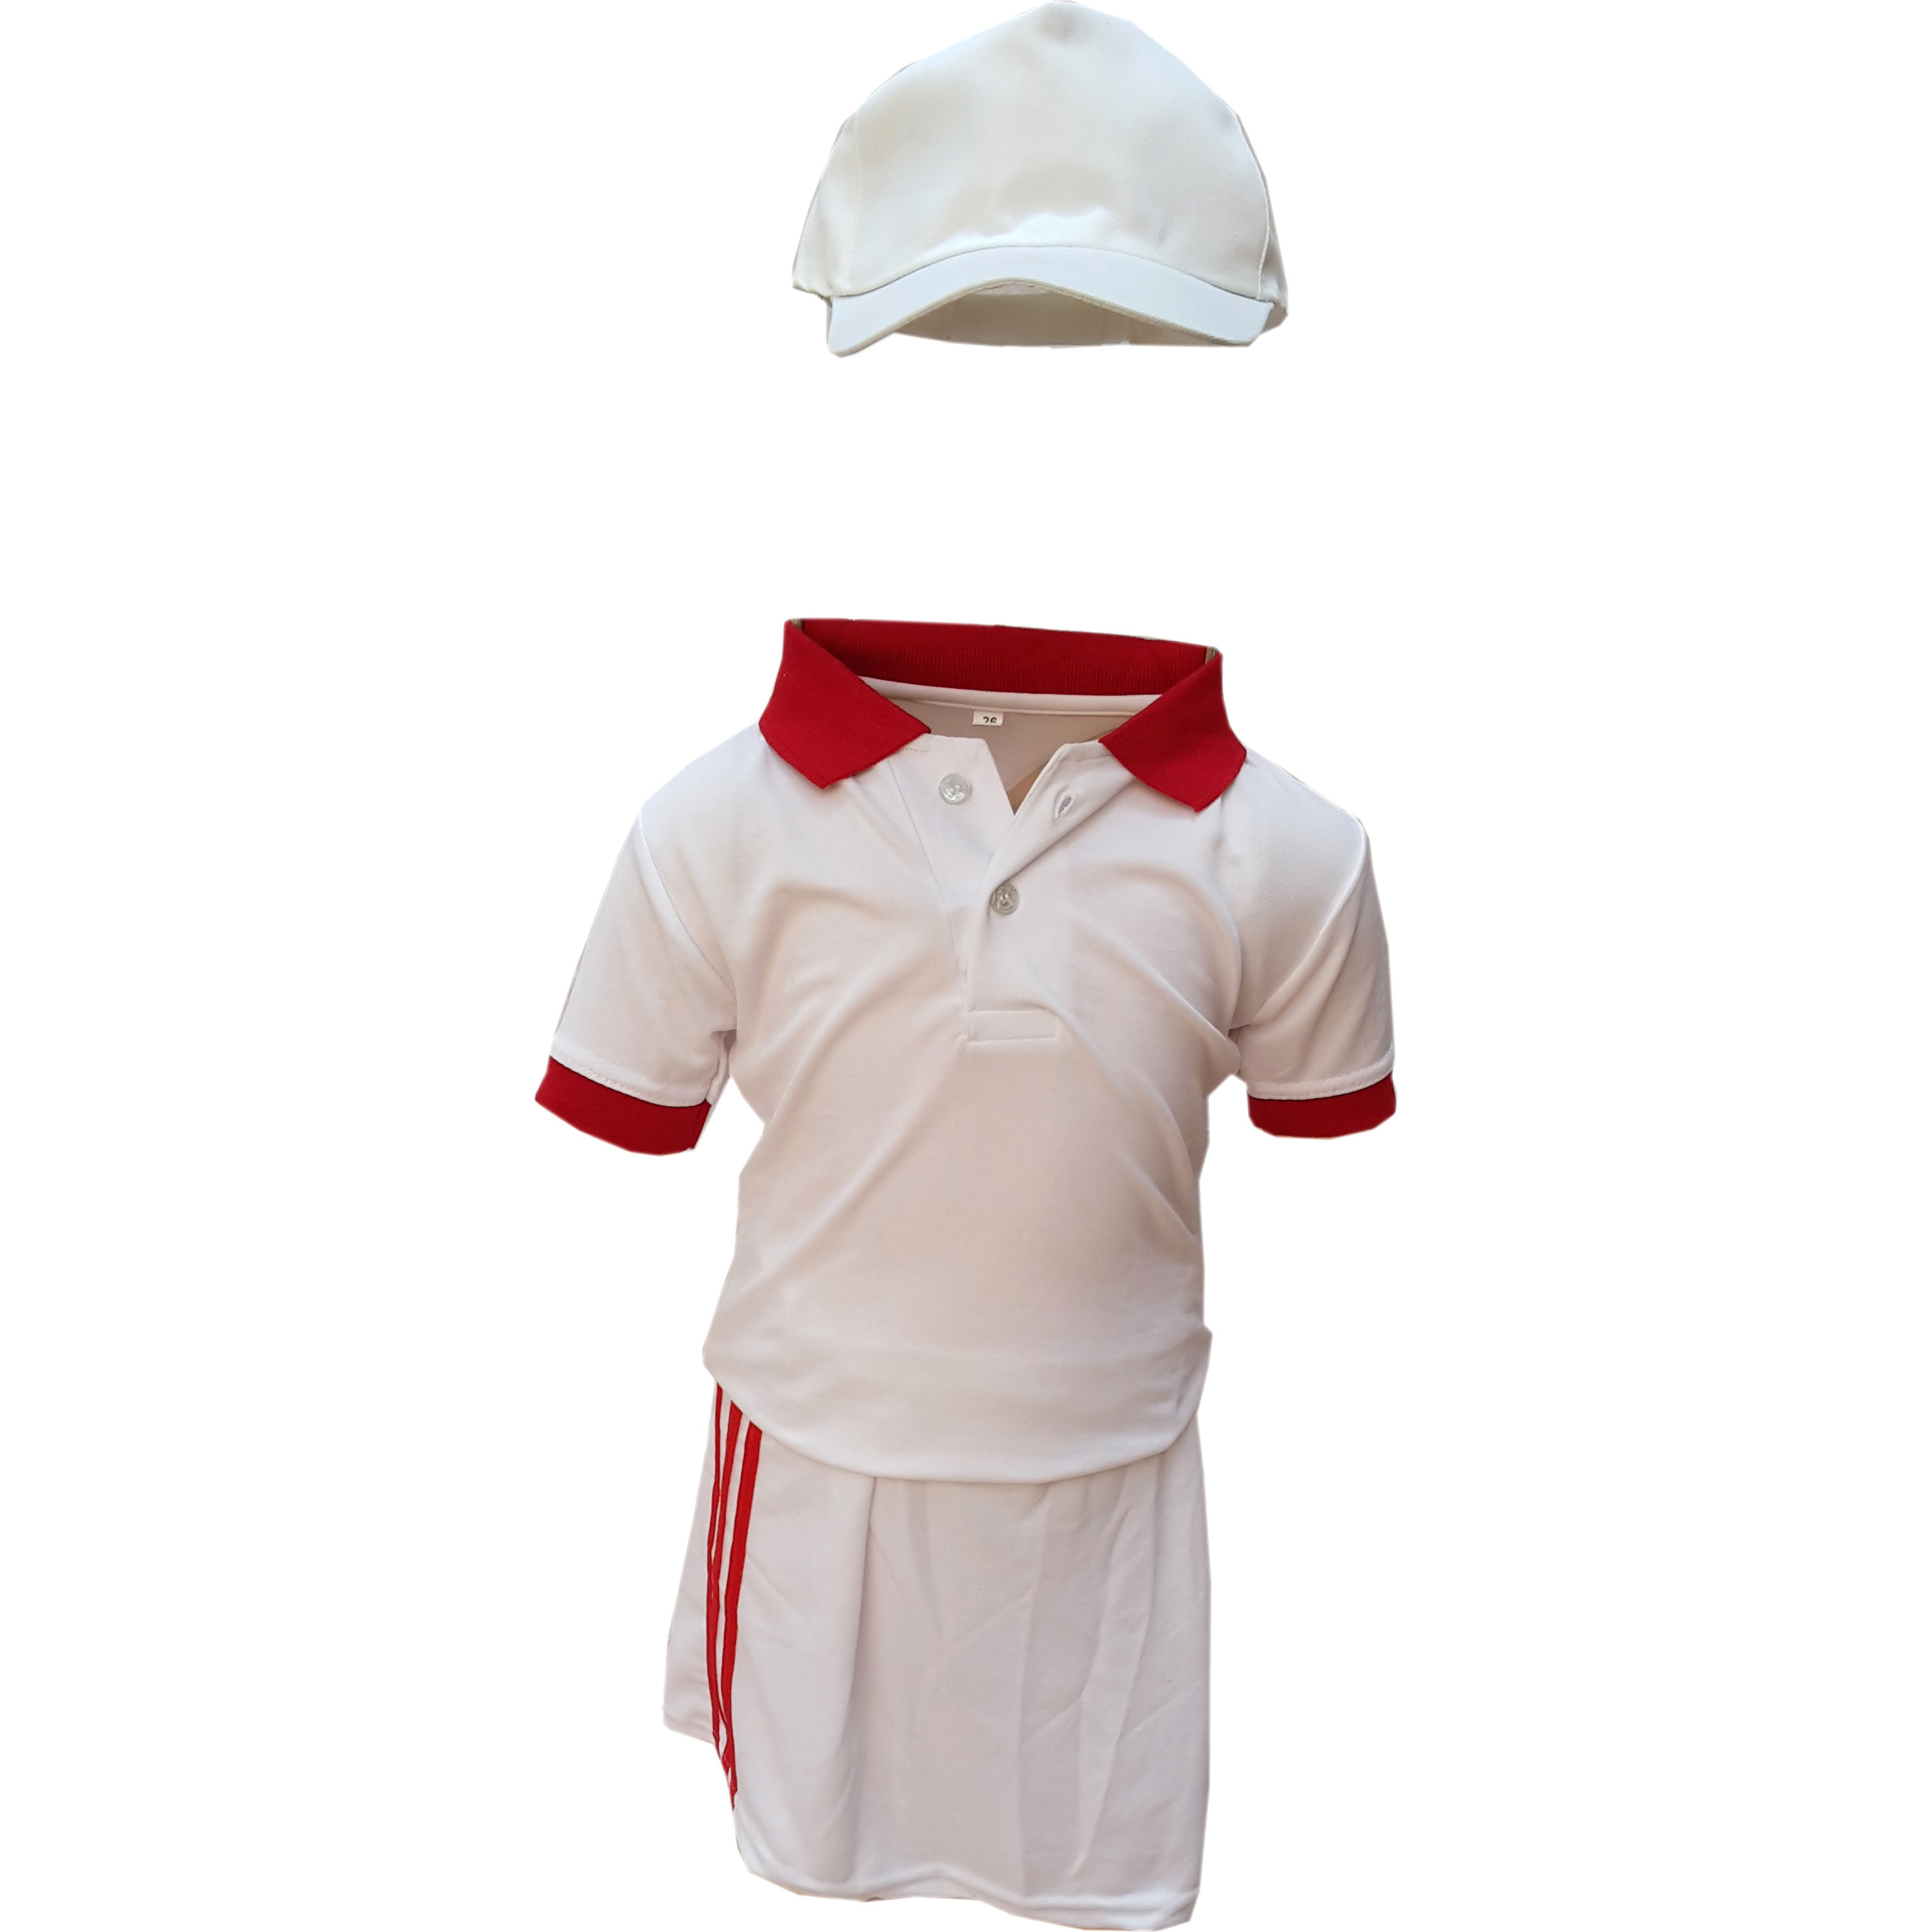 KFD Sania Mirza fancy dress for kids,National Hero Costume For School Annual function/Theme Party/Competition/Stage Shows Dress